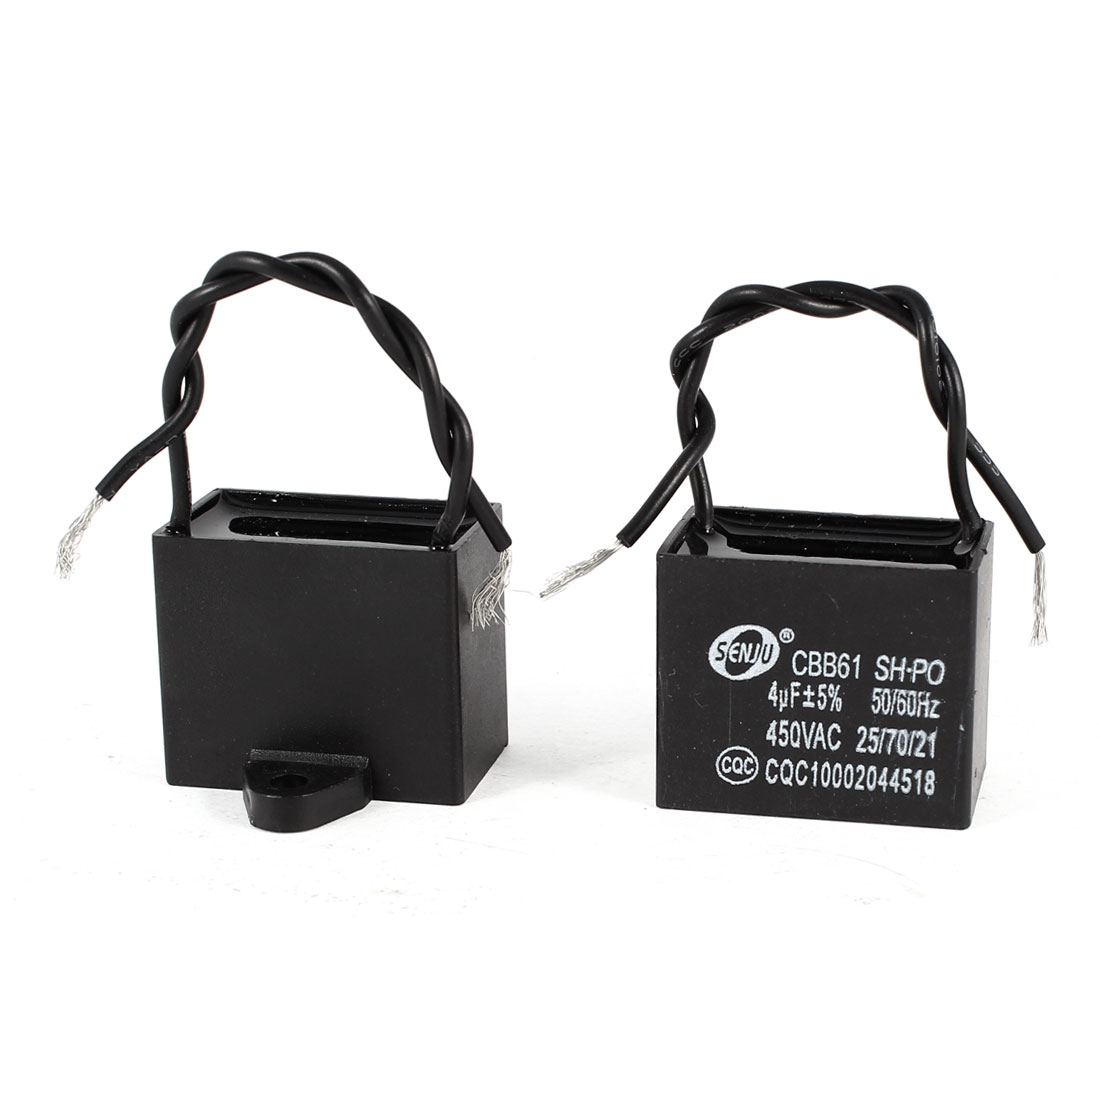 AC 450V 4uF 9cm Wired Metalized Polypropylene Film Motor Run Capacitors 2 Pcs